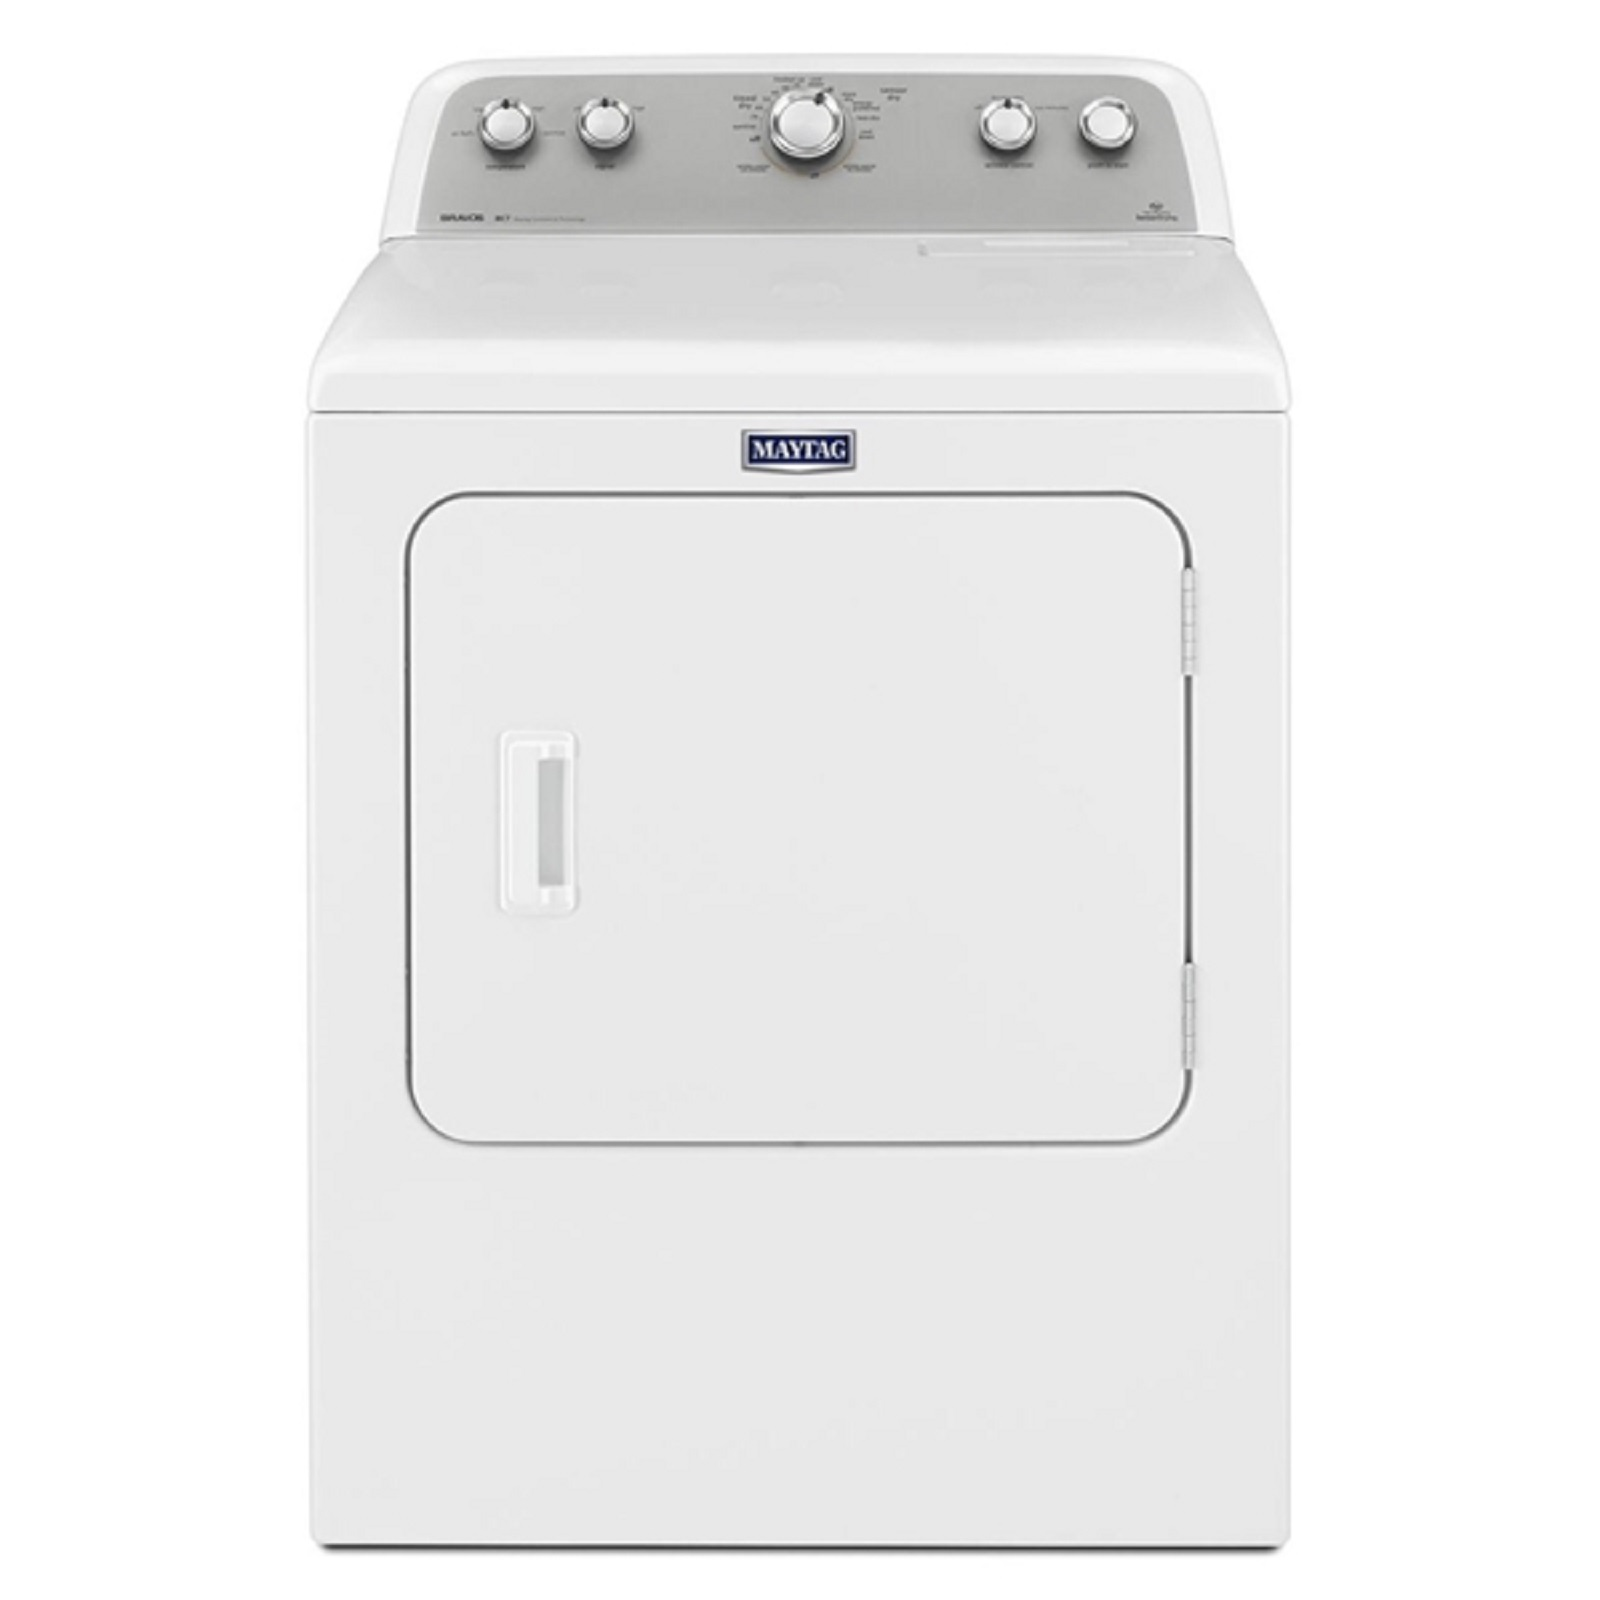 Maytag 7 Cu. Ft. White Gas Dryer - MGDC415EW